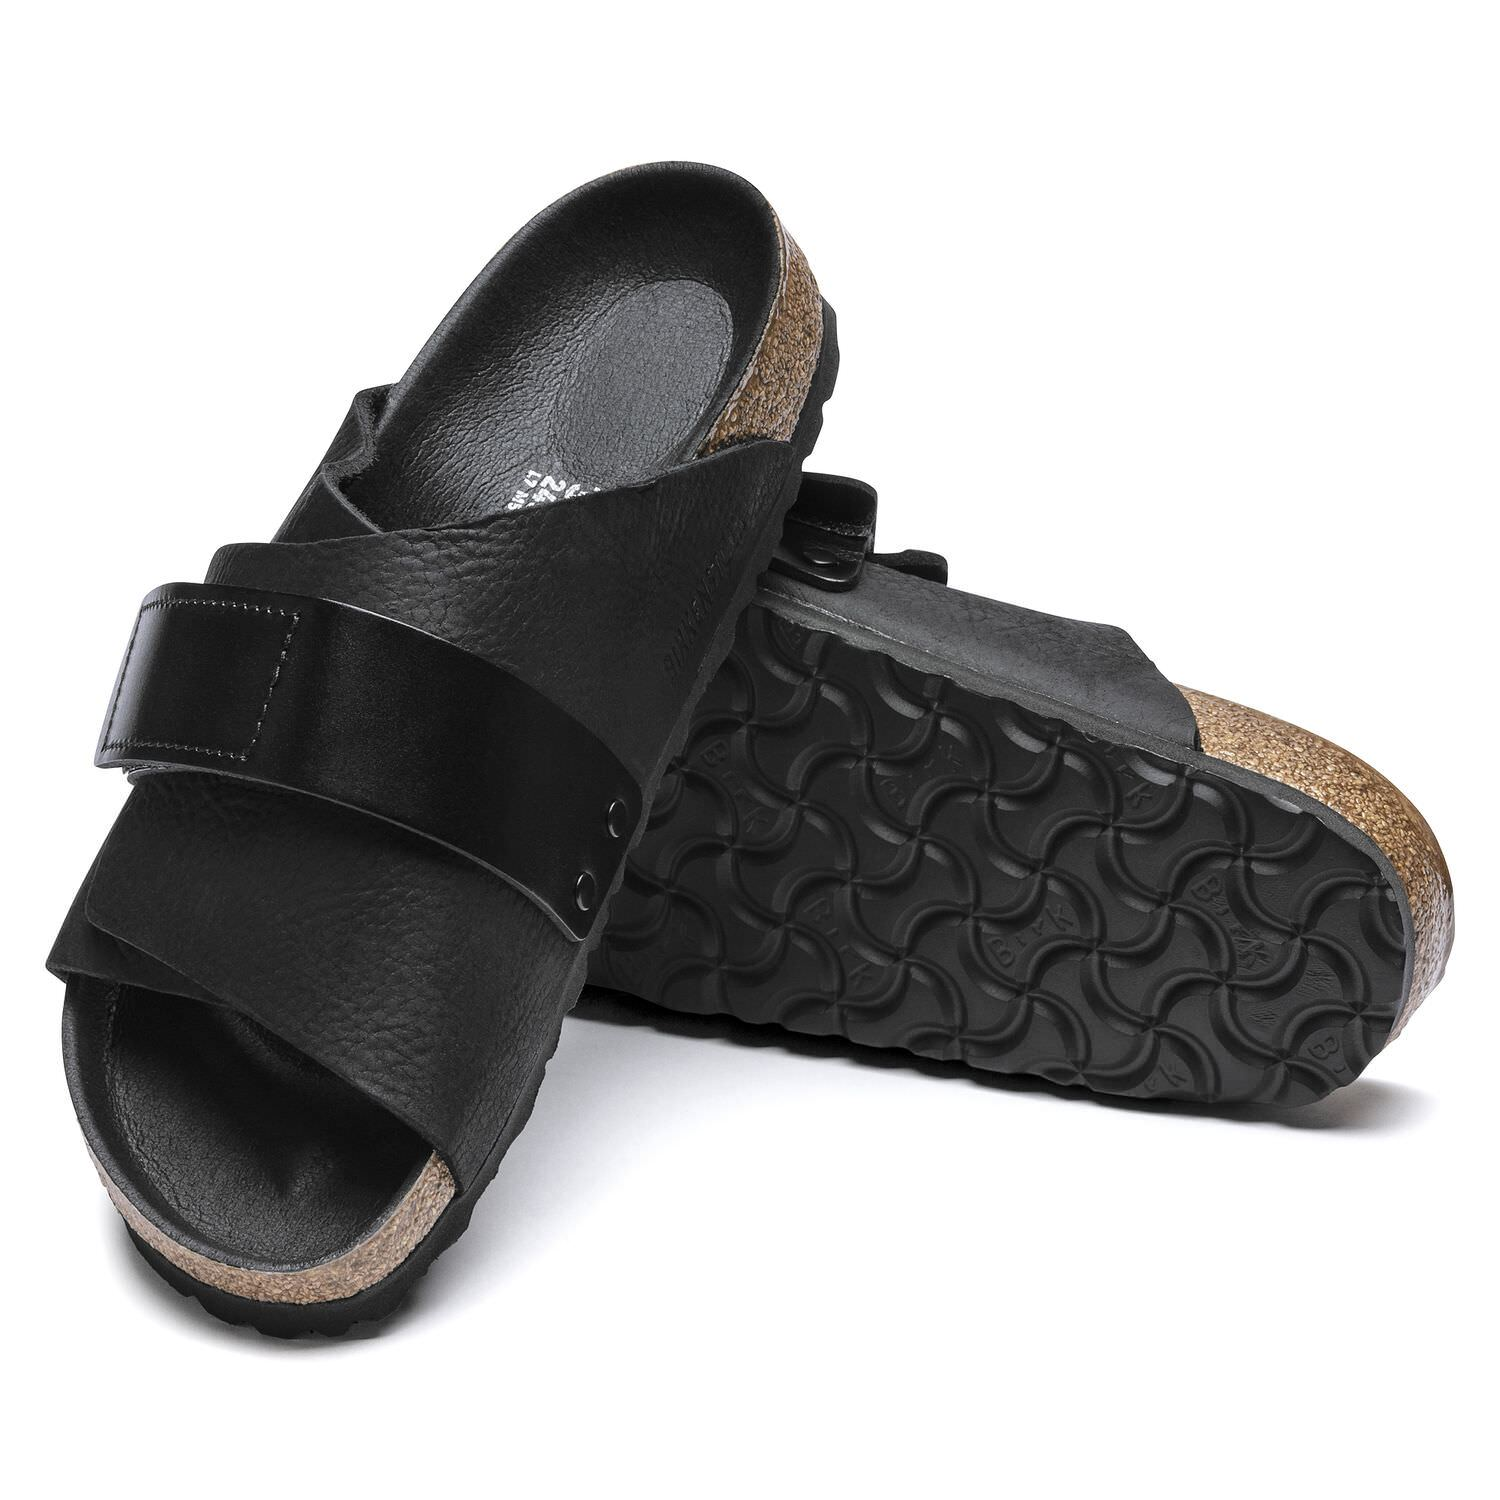 Birkenstock Seasonal, Kyoto, Nubuck Leather/Birko-Flor, Regular Fit, Black Sandals Birkenstock Seasonal Black 36